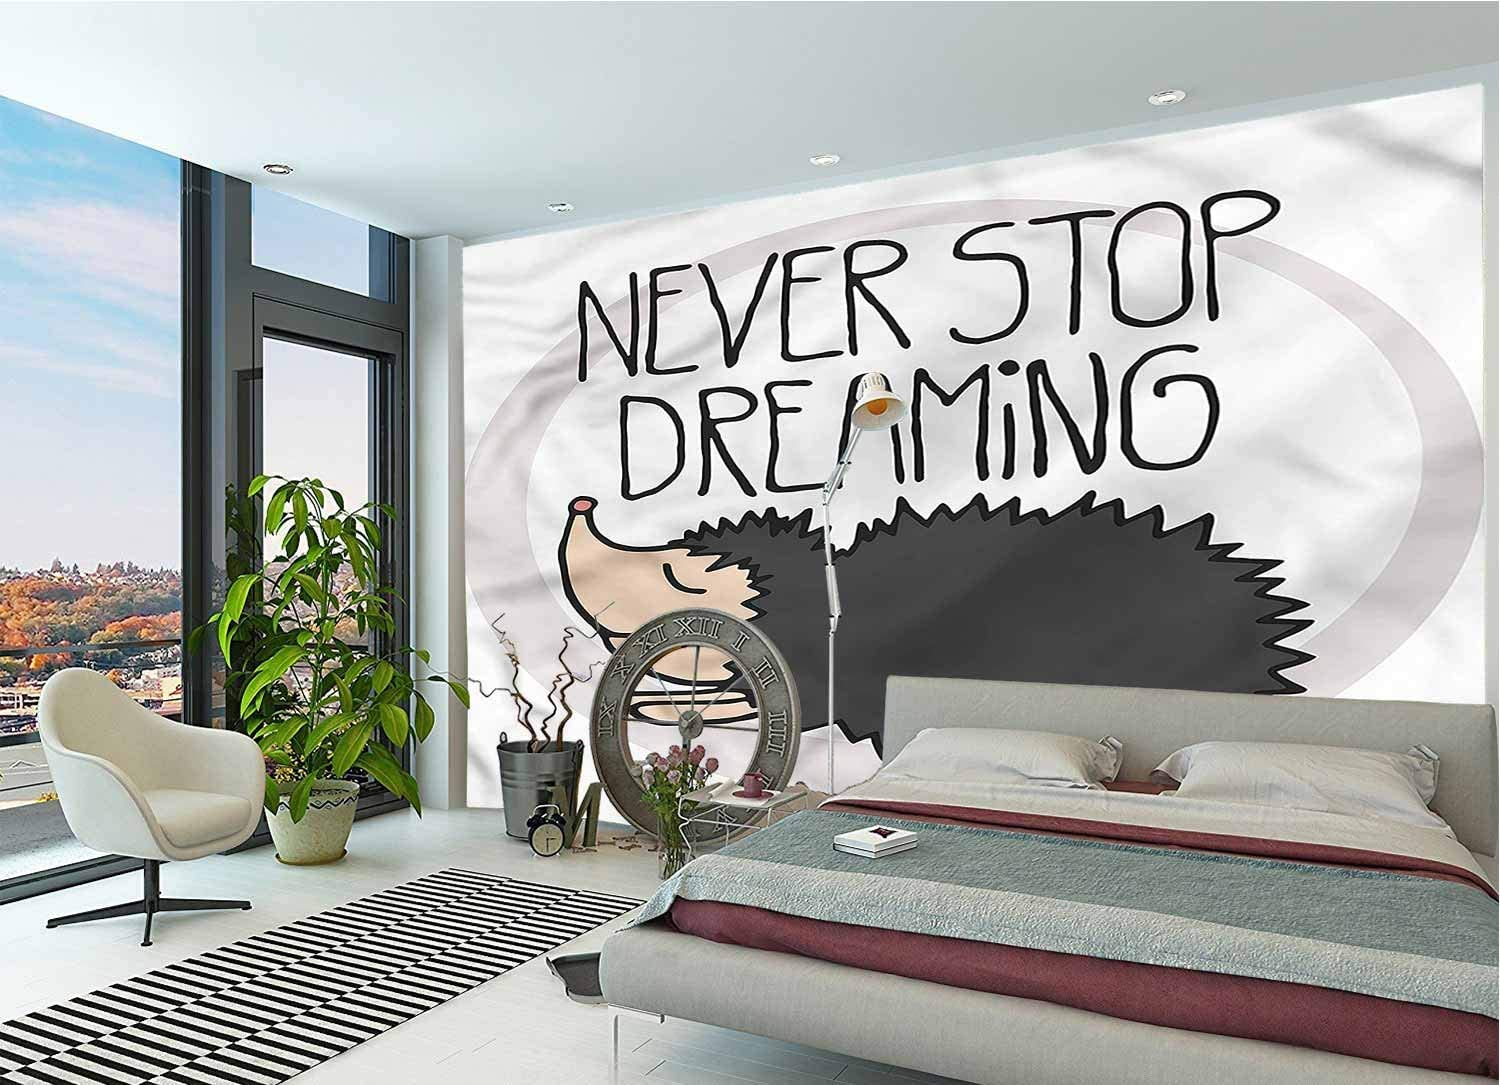 LCGGDB Quote Wallpaper Mural,Hedgehog Giving A Life Advise Peel & Stick Wallpaper for Office Nursery School Family Decor Playroom Birthday Gift -144x100 Inch